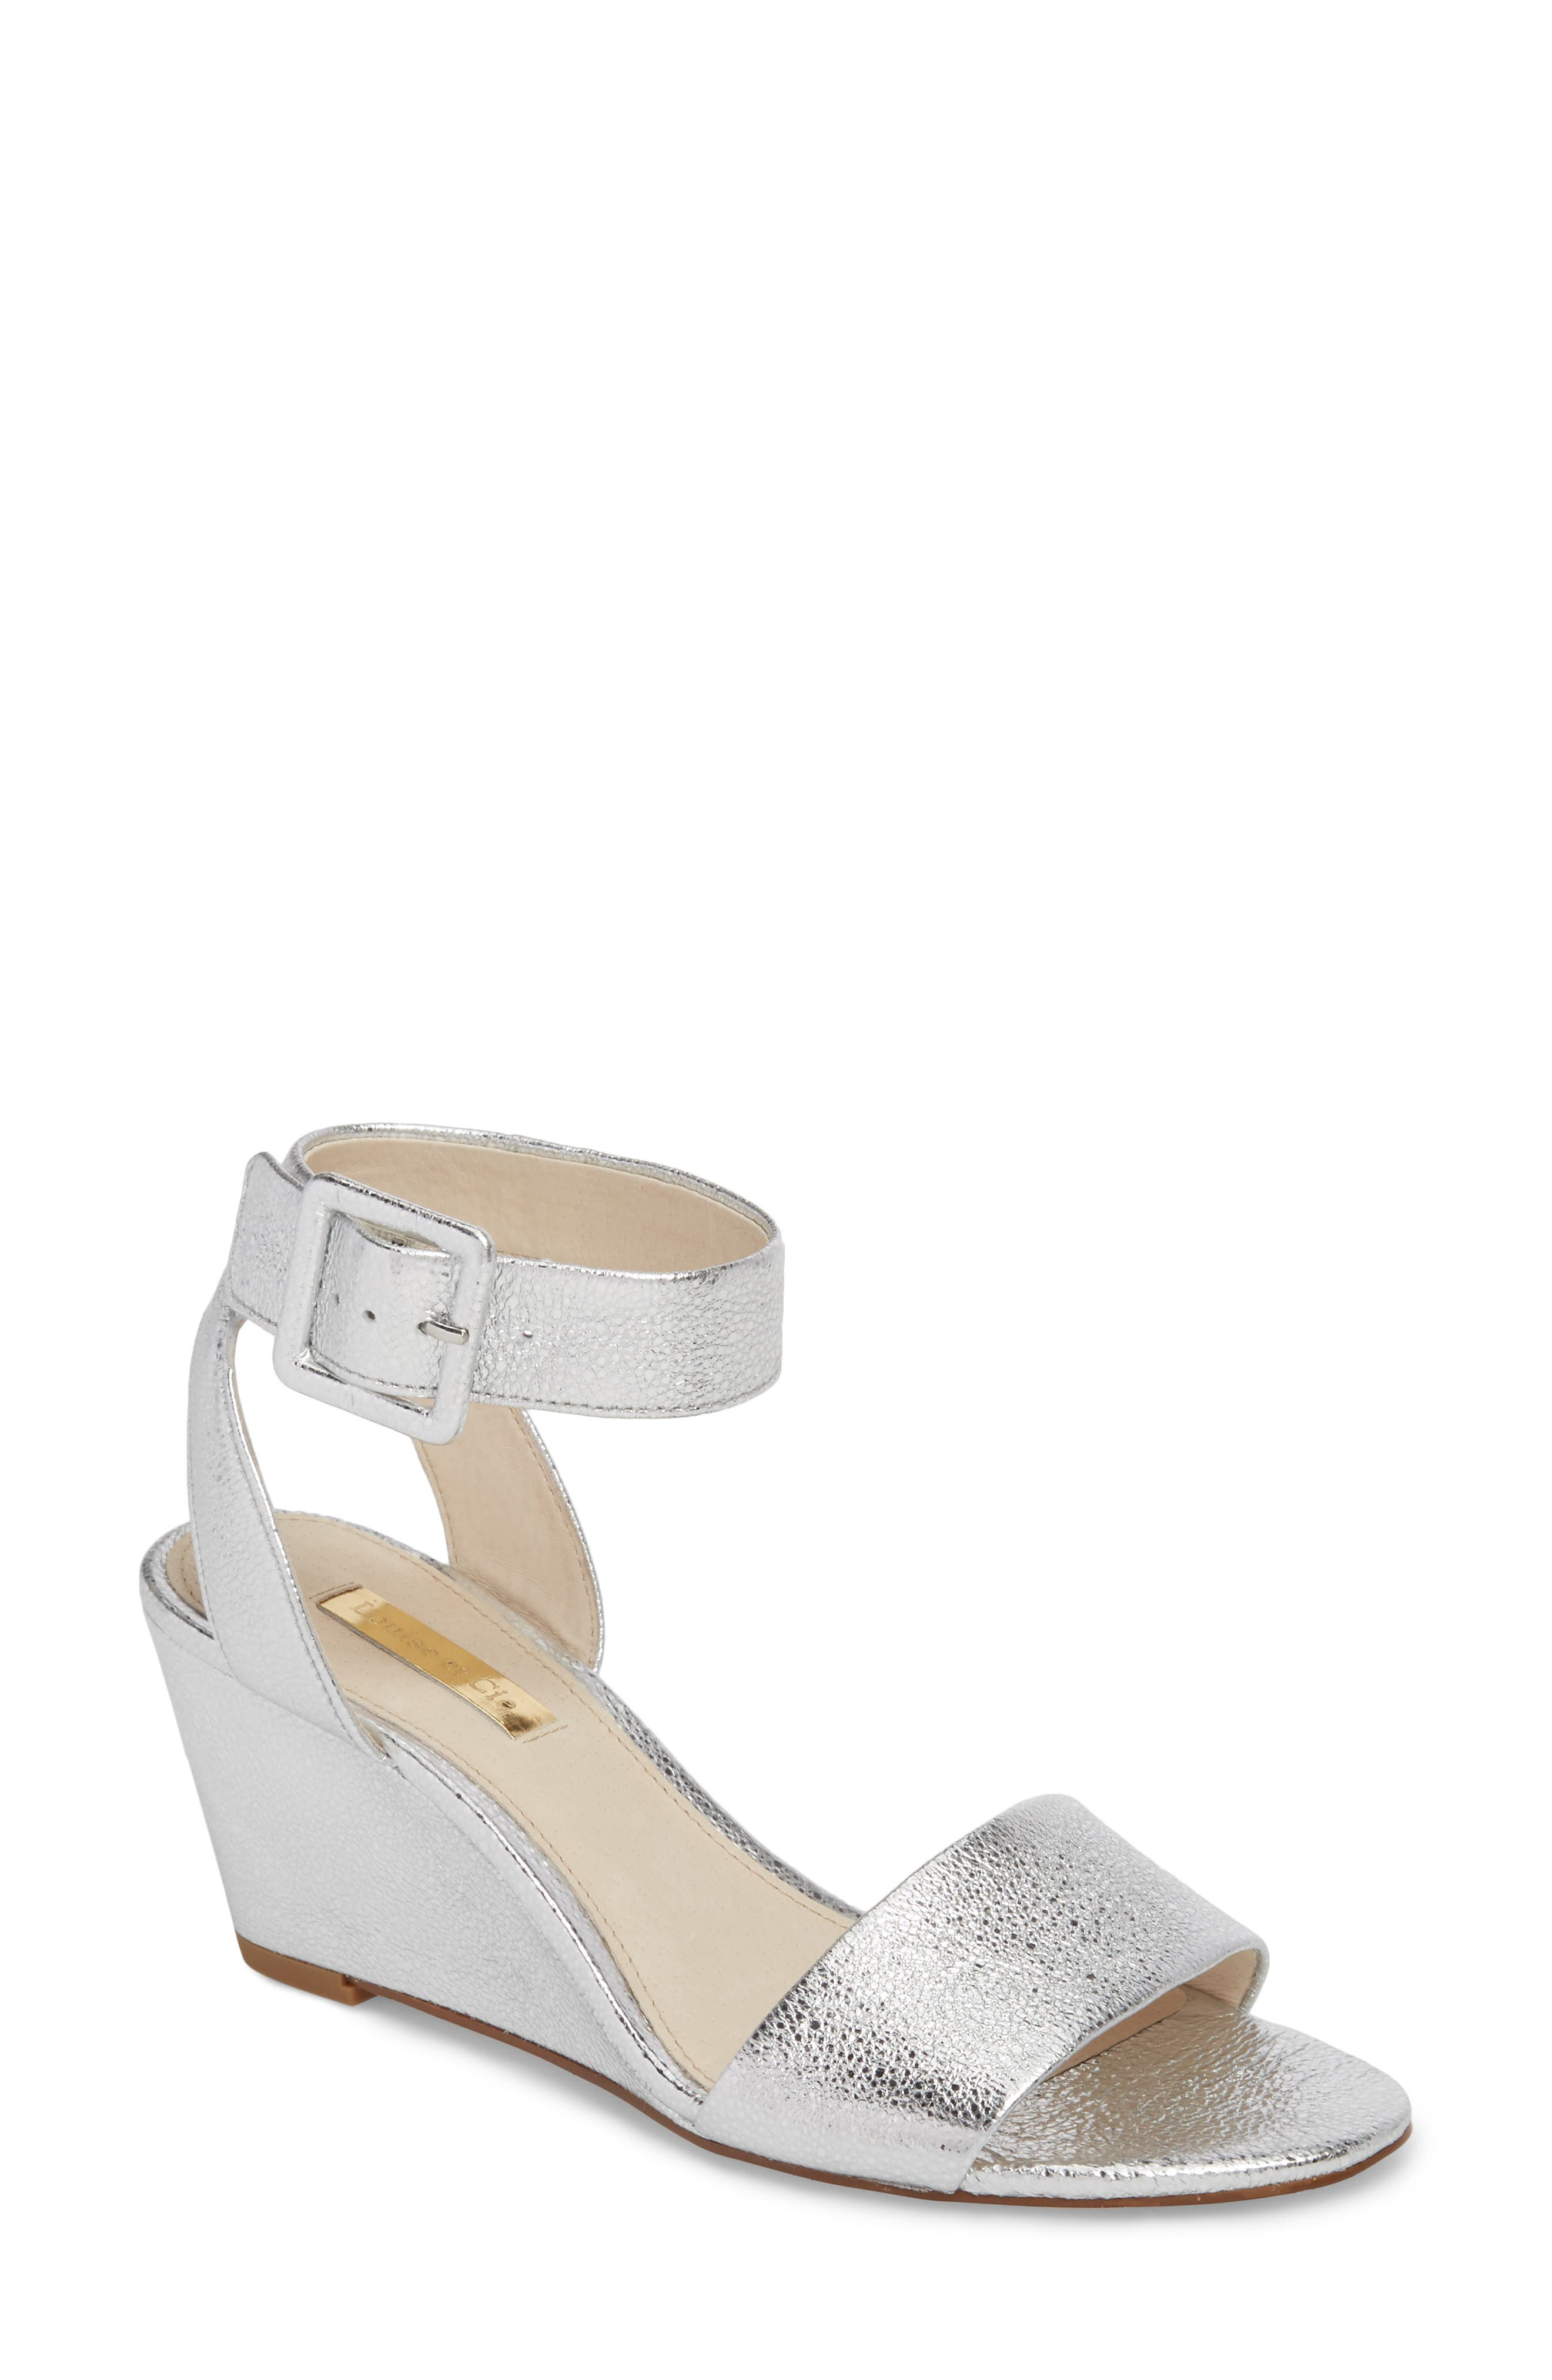 LOUISE ET CIE, Punya Wedge Sandal, Main thumbnail 1, color, STERLING LEATHER